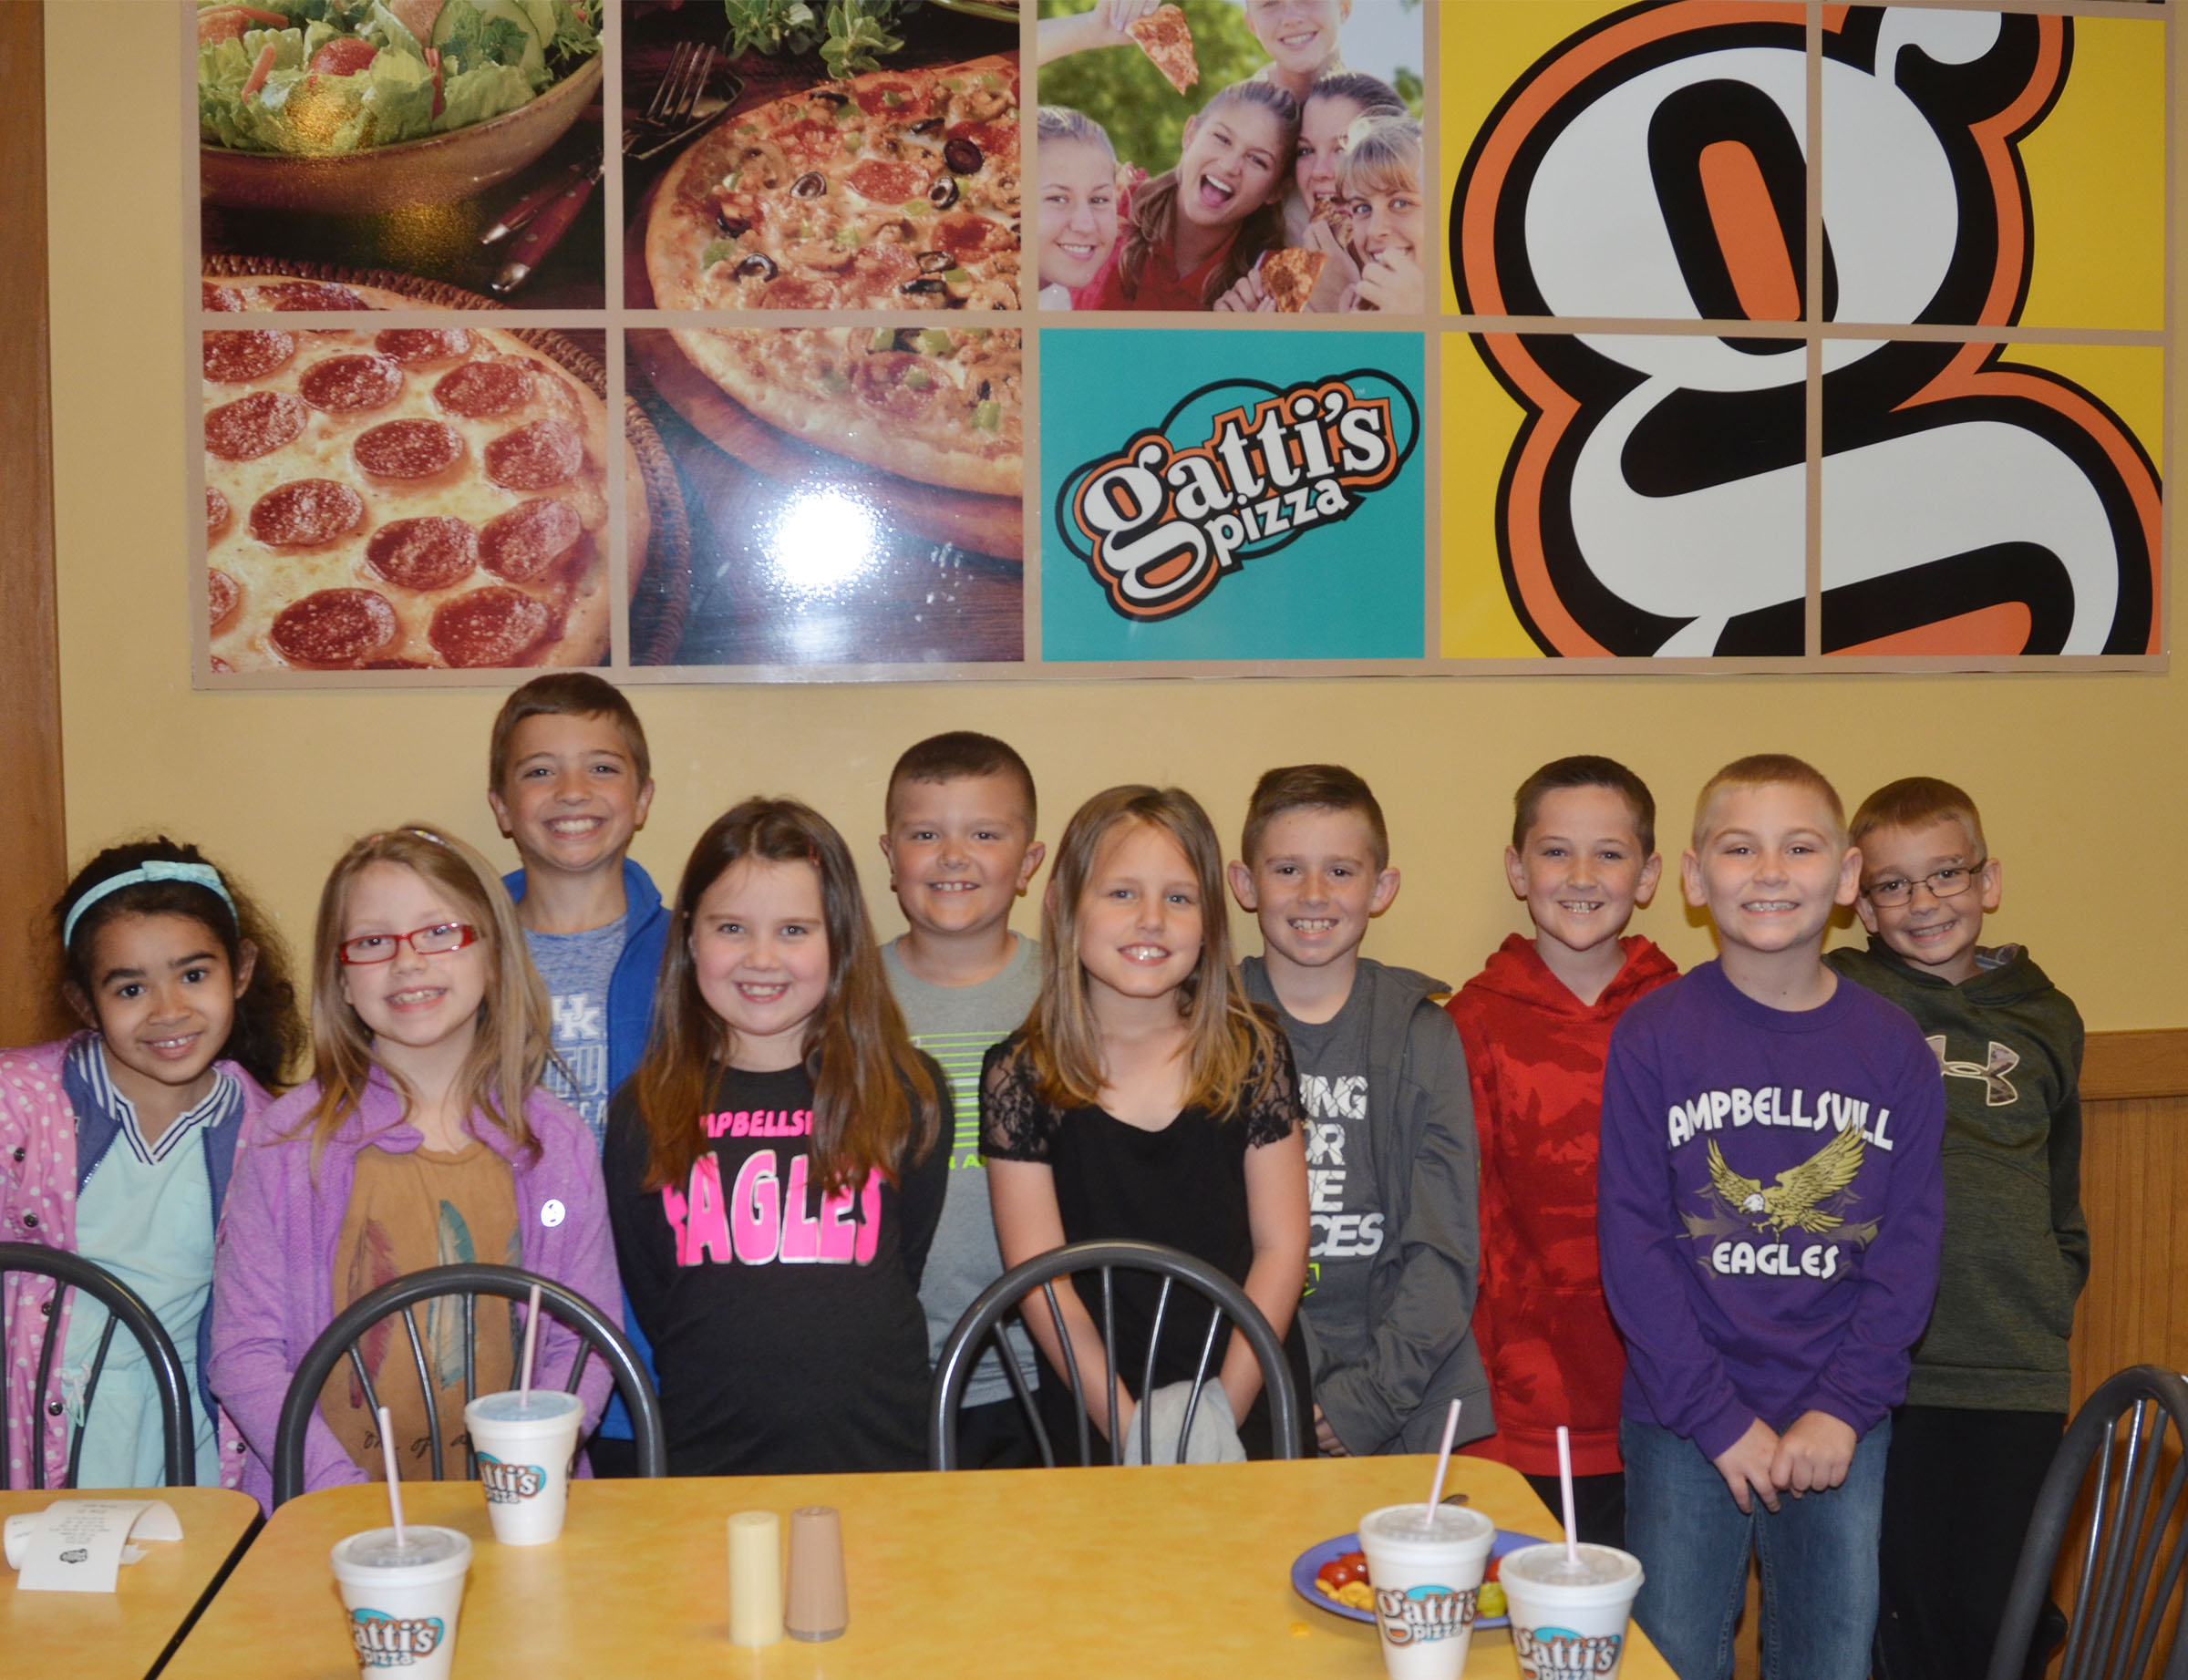 CES Lighthouse Team members enjoyed a lunch at Gatti's Pizza on Friday, May 5, for their hard work this school year. From left are second-grader Sophia Santos, third-graders Gracie Pendleton, Carson Mills and Maylee Wilds, second-grader Cayton Lawhorn, third-grader Madisyn Bradfield, second-graders Luke Adkins, Lanigan Price and Joseph Greer and third-grader Cameron Estes.